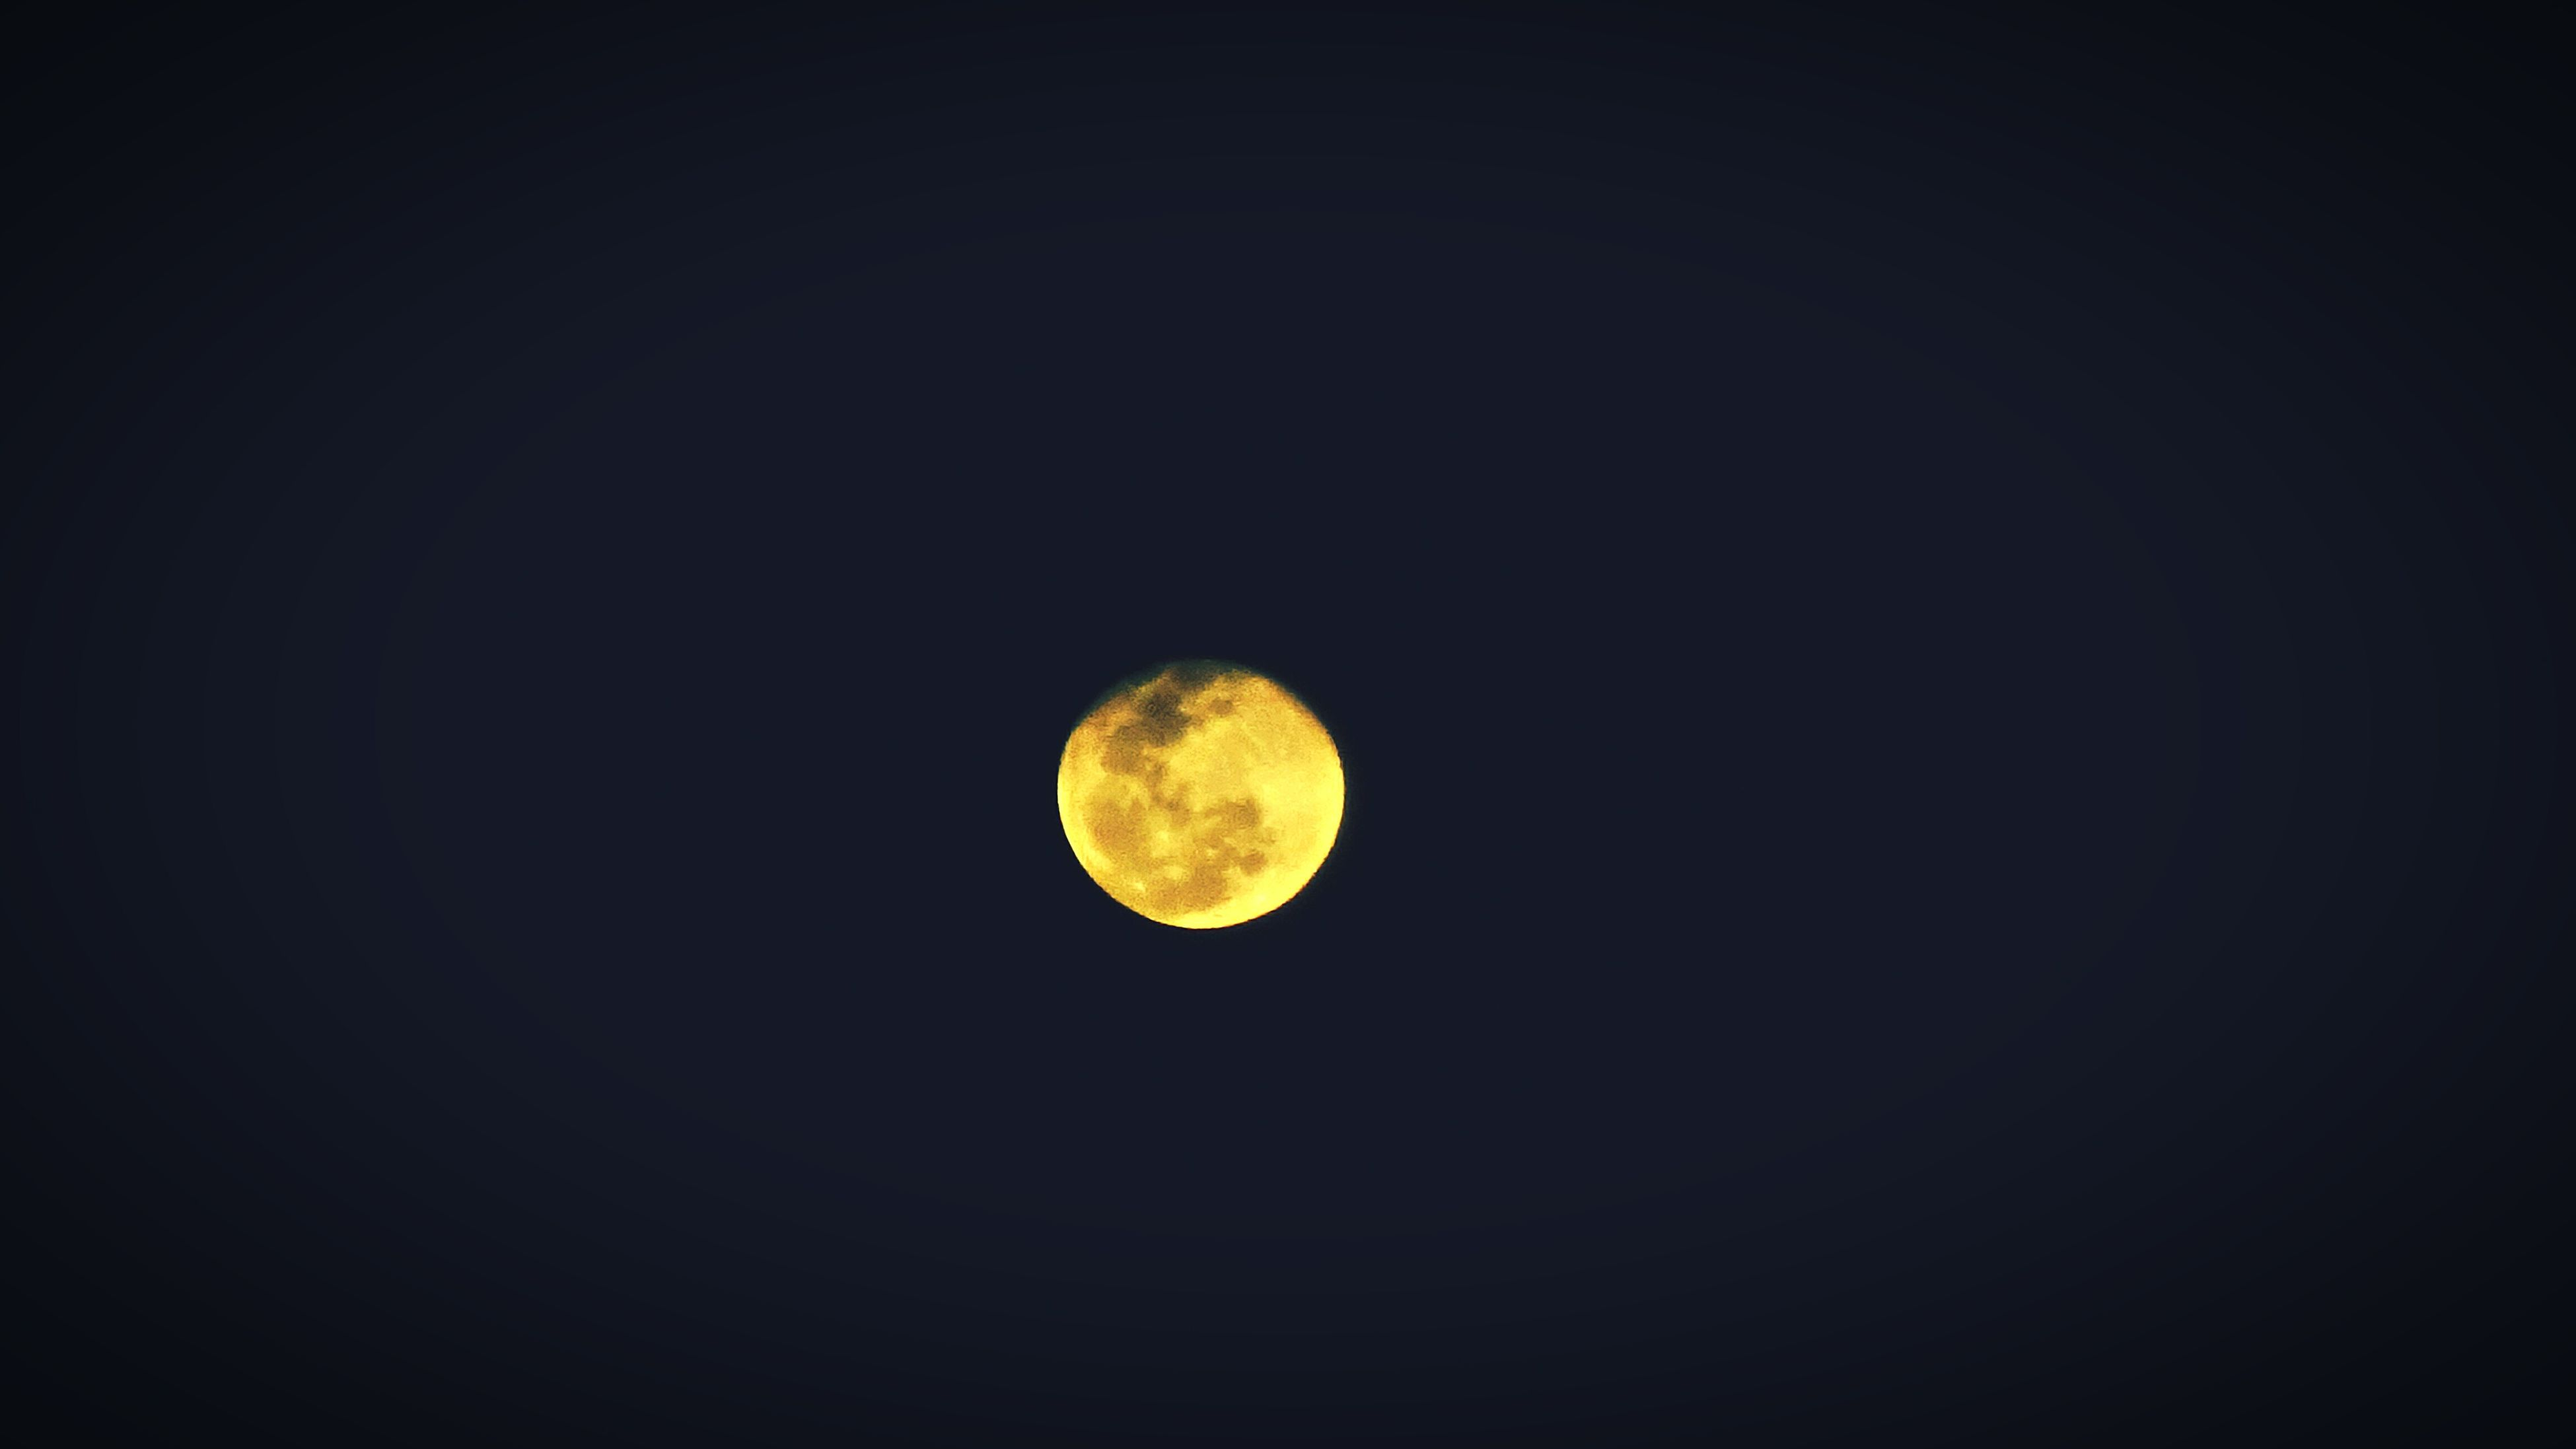 moon, astronomy, night, moon surface, planetary moon, beauty in nature, scenics, tranquility, nature, tranquil scene, no people, half moon, outdoors, space exploration, clear sky, space, sky